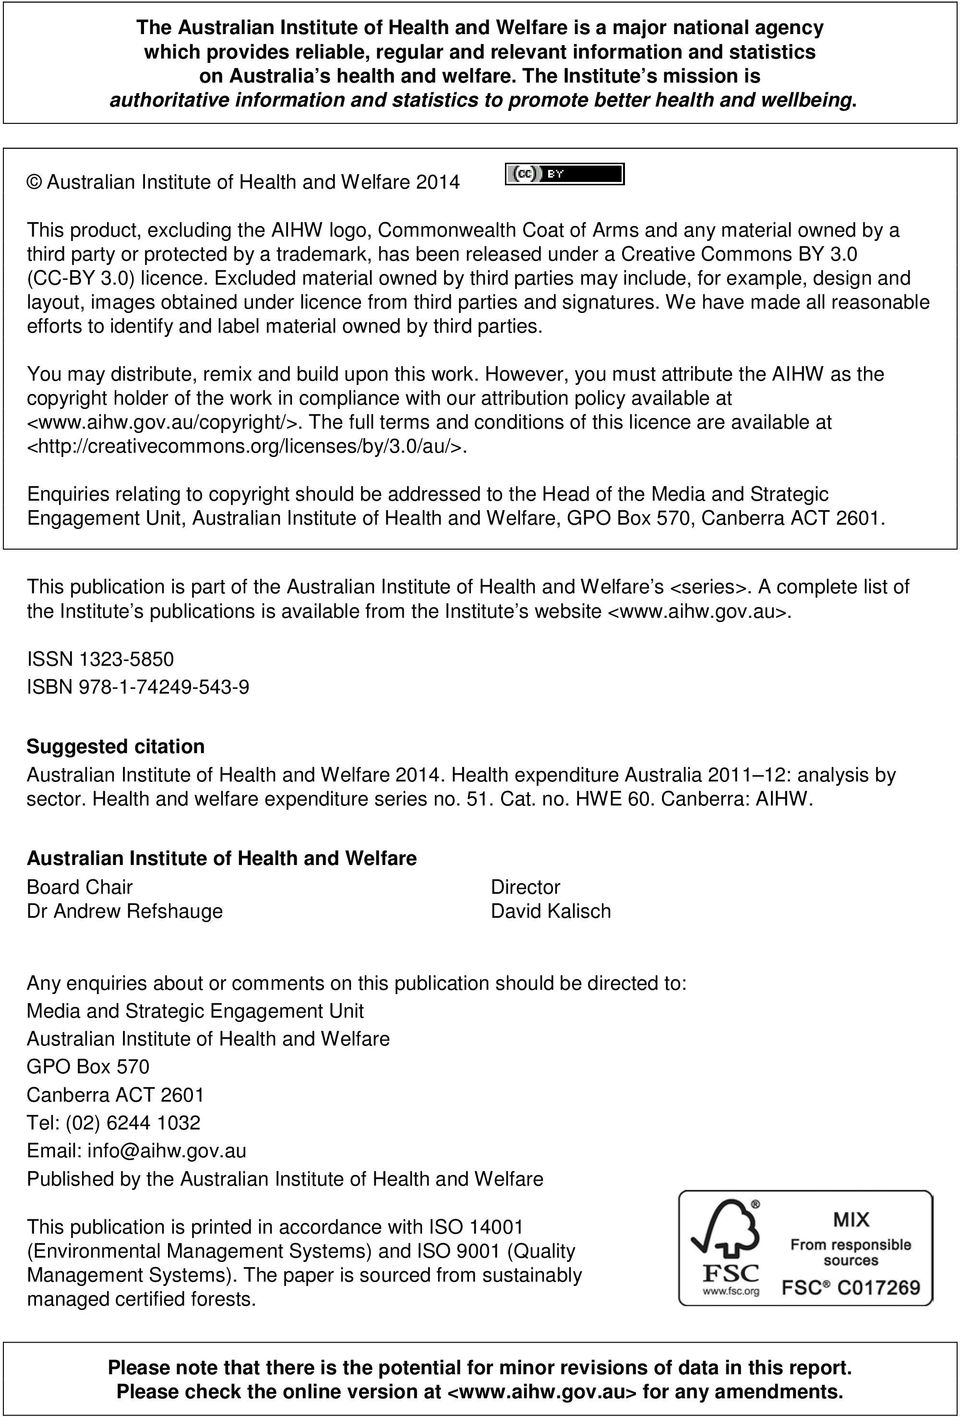 Australian Institute of Health and Welfare 2014 This product, excluding the AIHW logo, Commonwealth Coat of Arms and any material owned by a third party or protected by a trademark, has been released